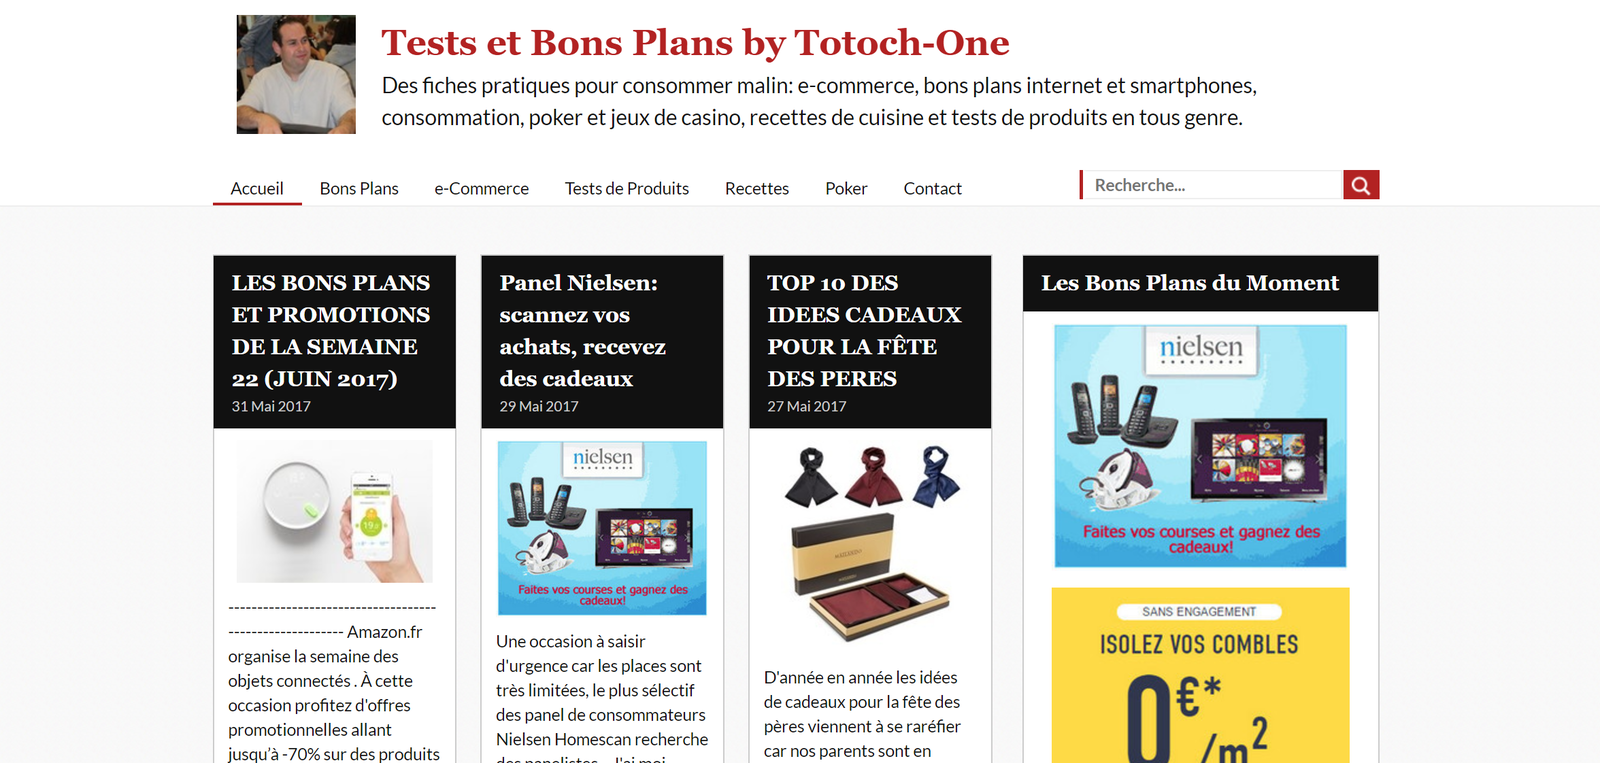 Tests et bons plans by Totoch-One